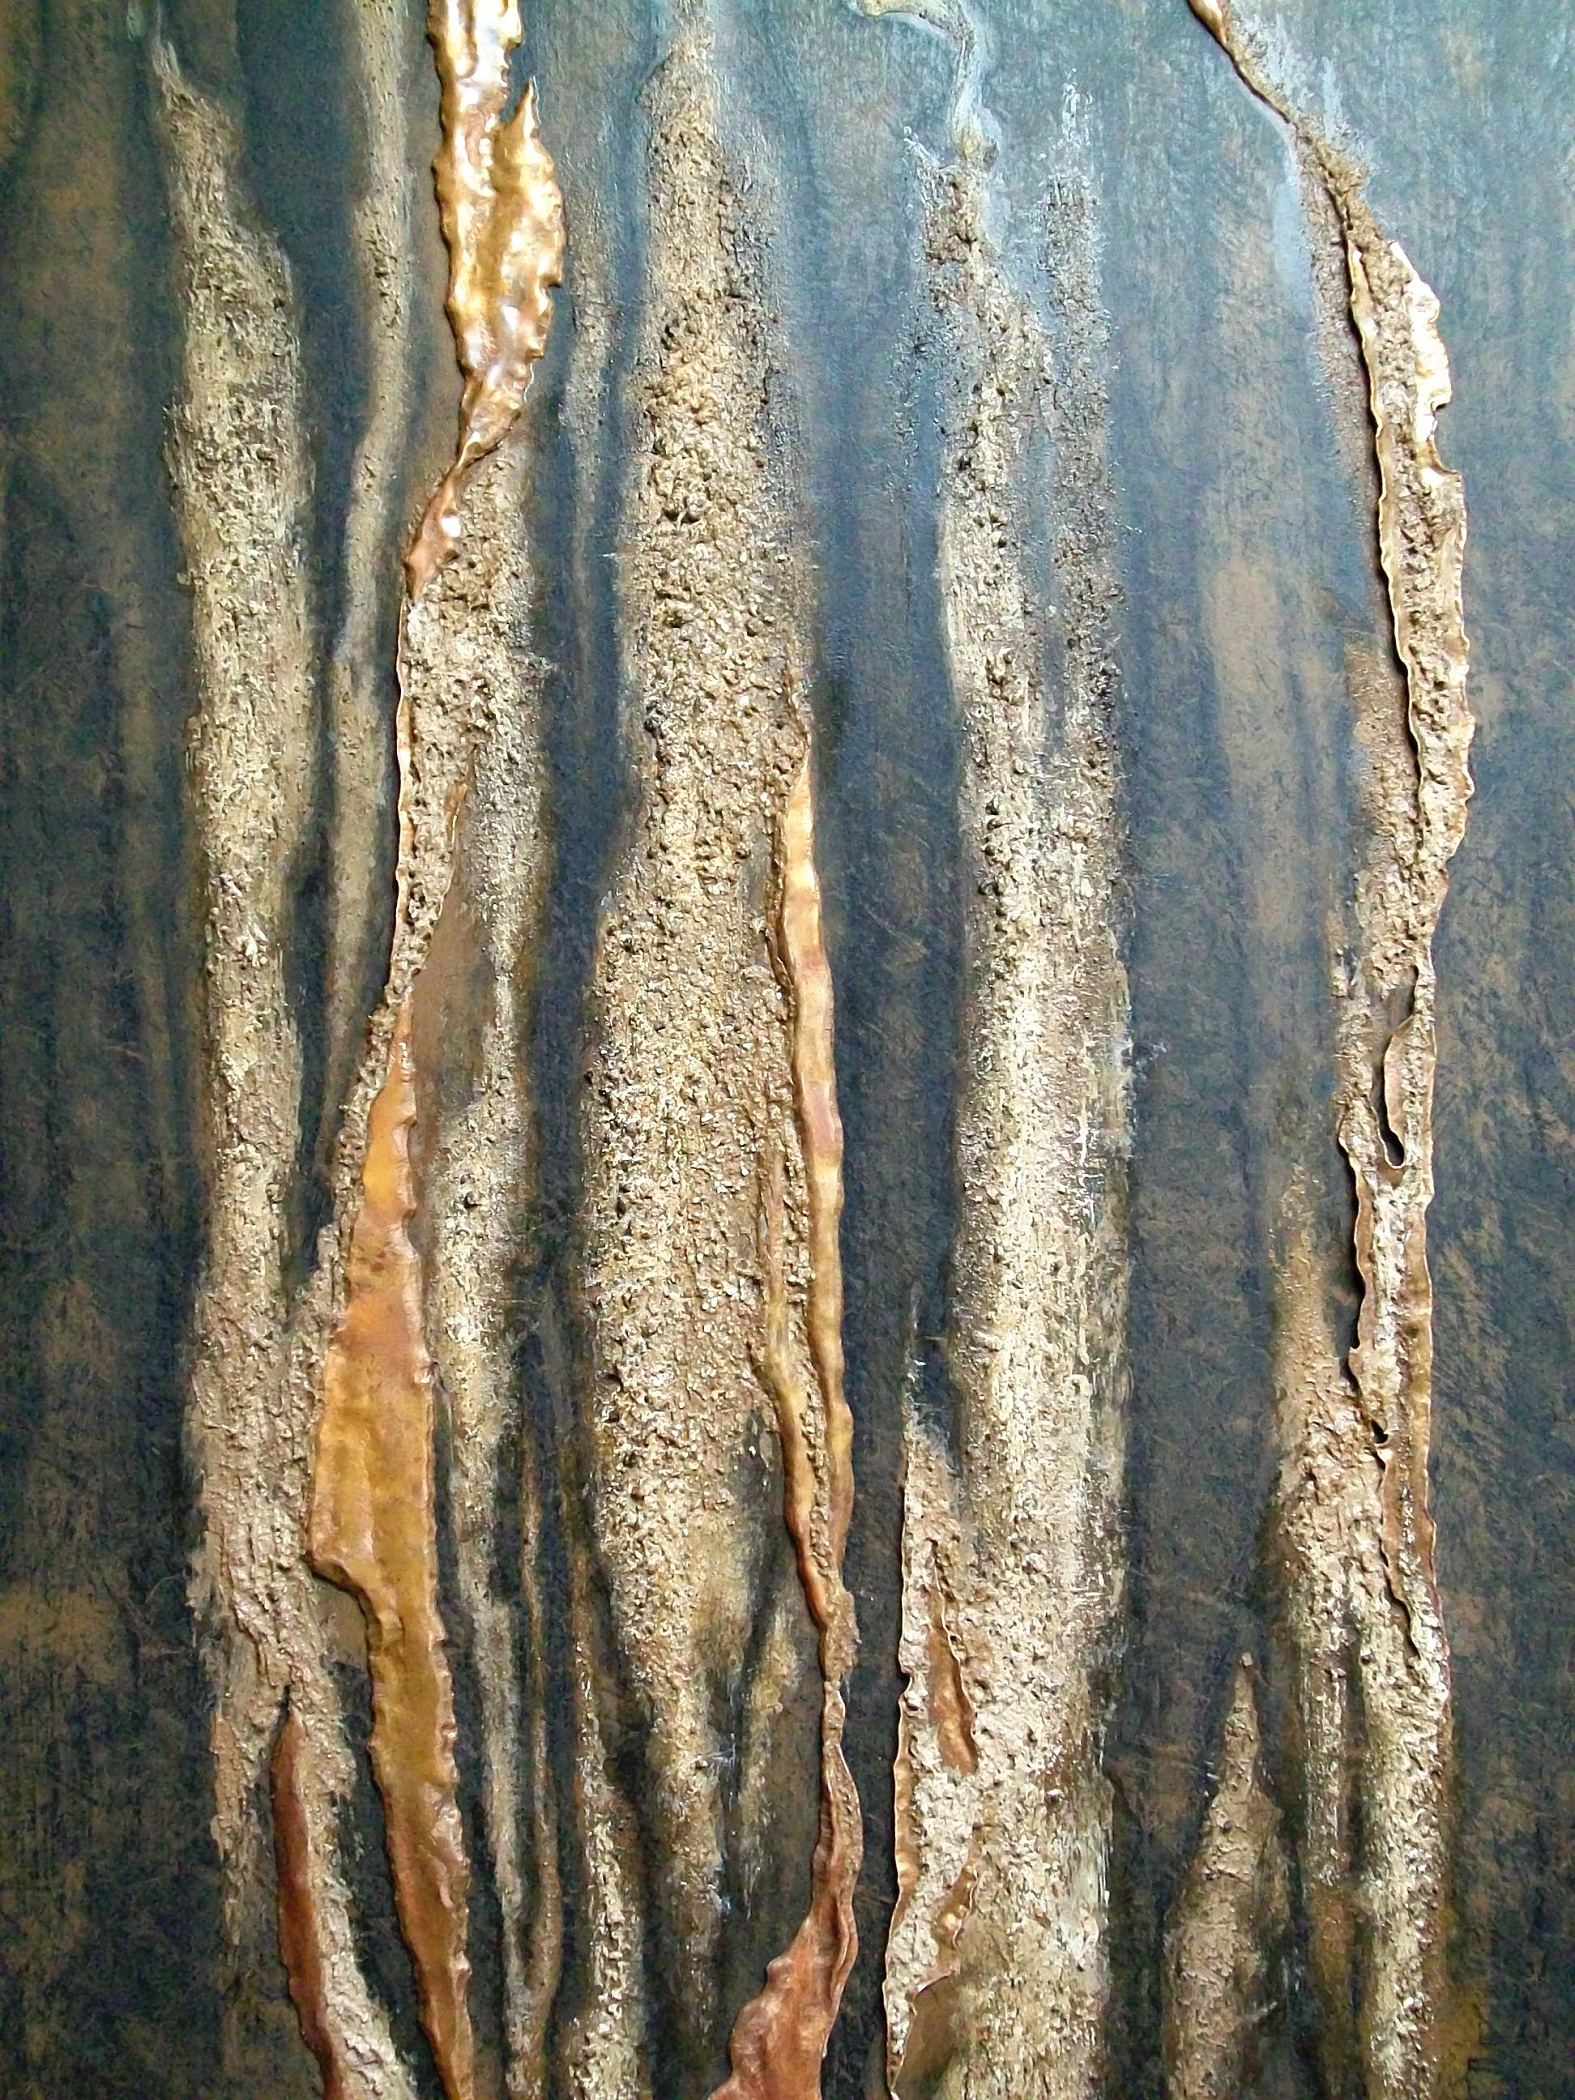 DETAIL a,  YARA DIPTYCH ,  Yara 1 , copper repoussé elements, mineral particles and acrylic on archival wood panel,